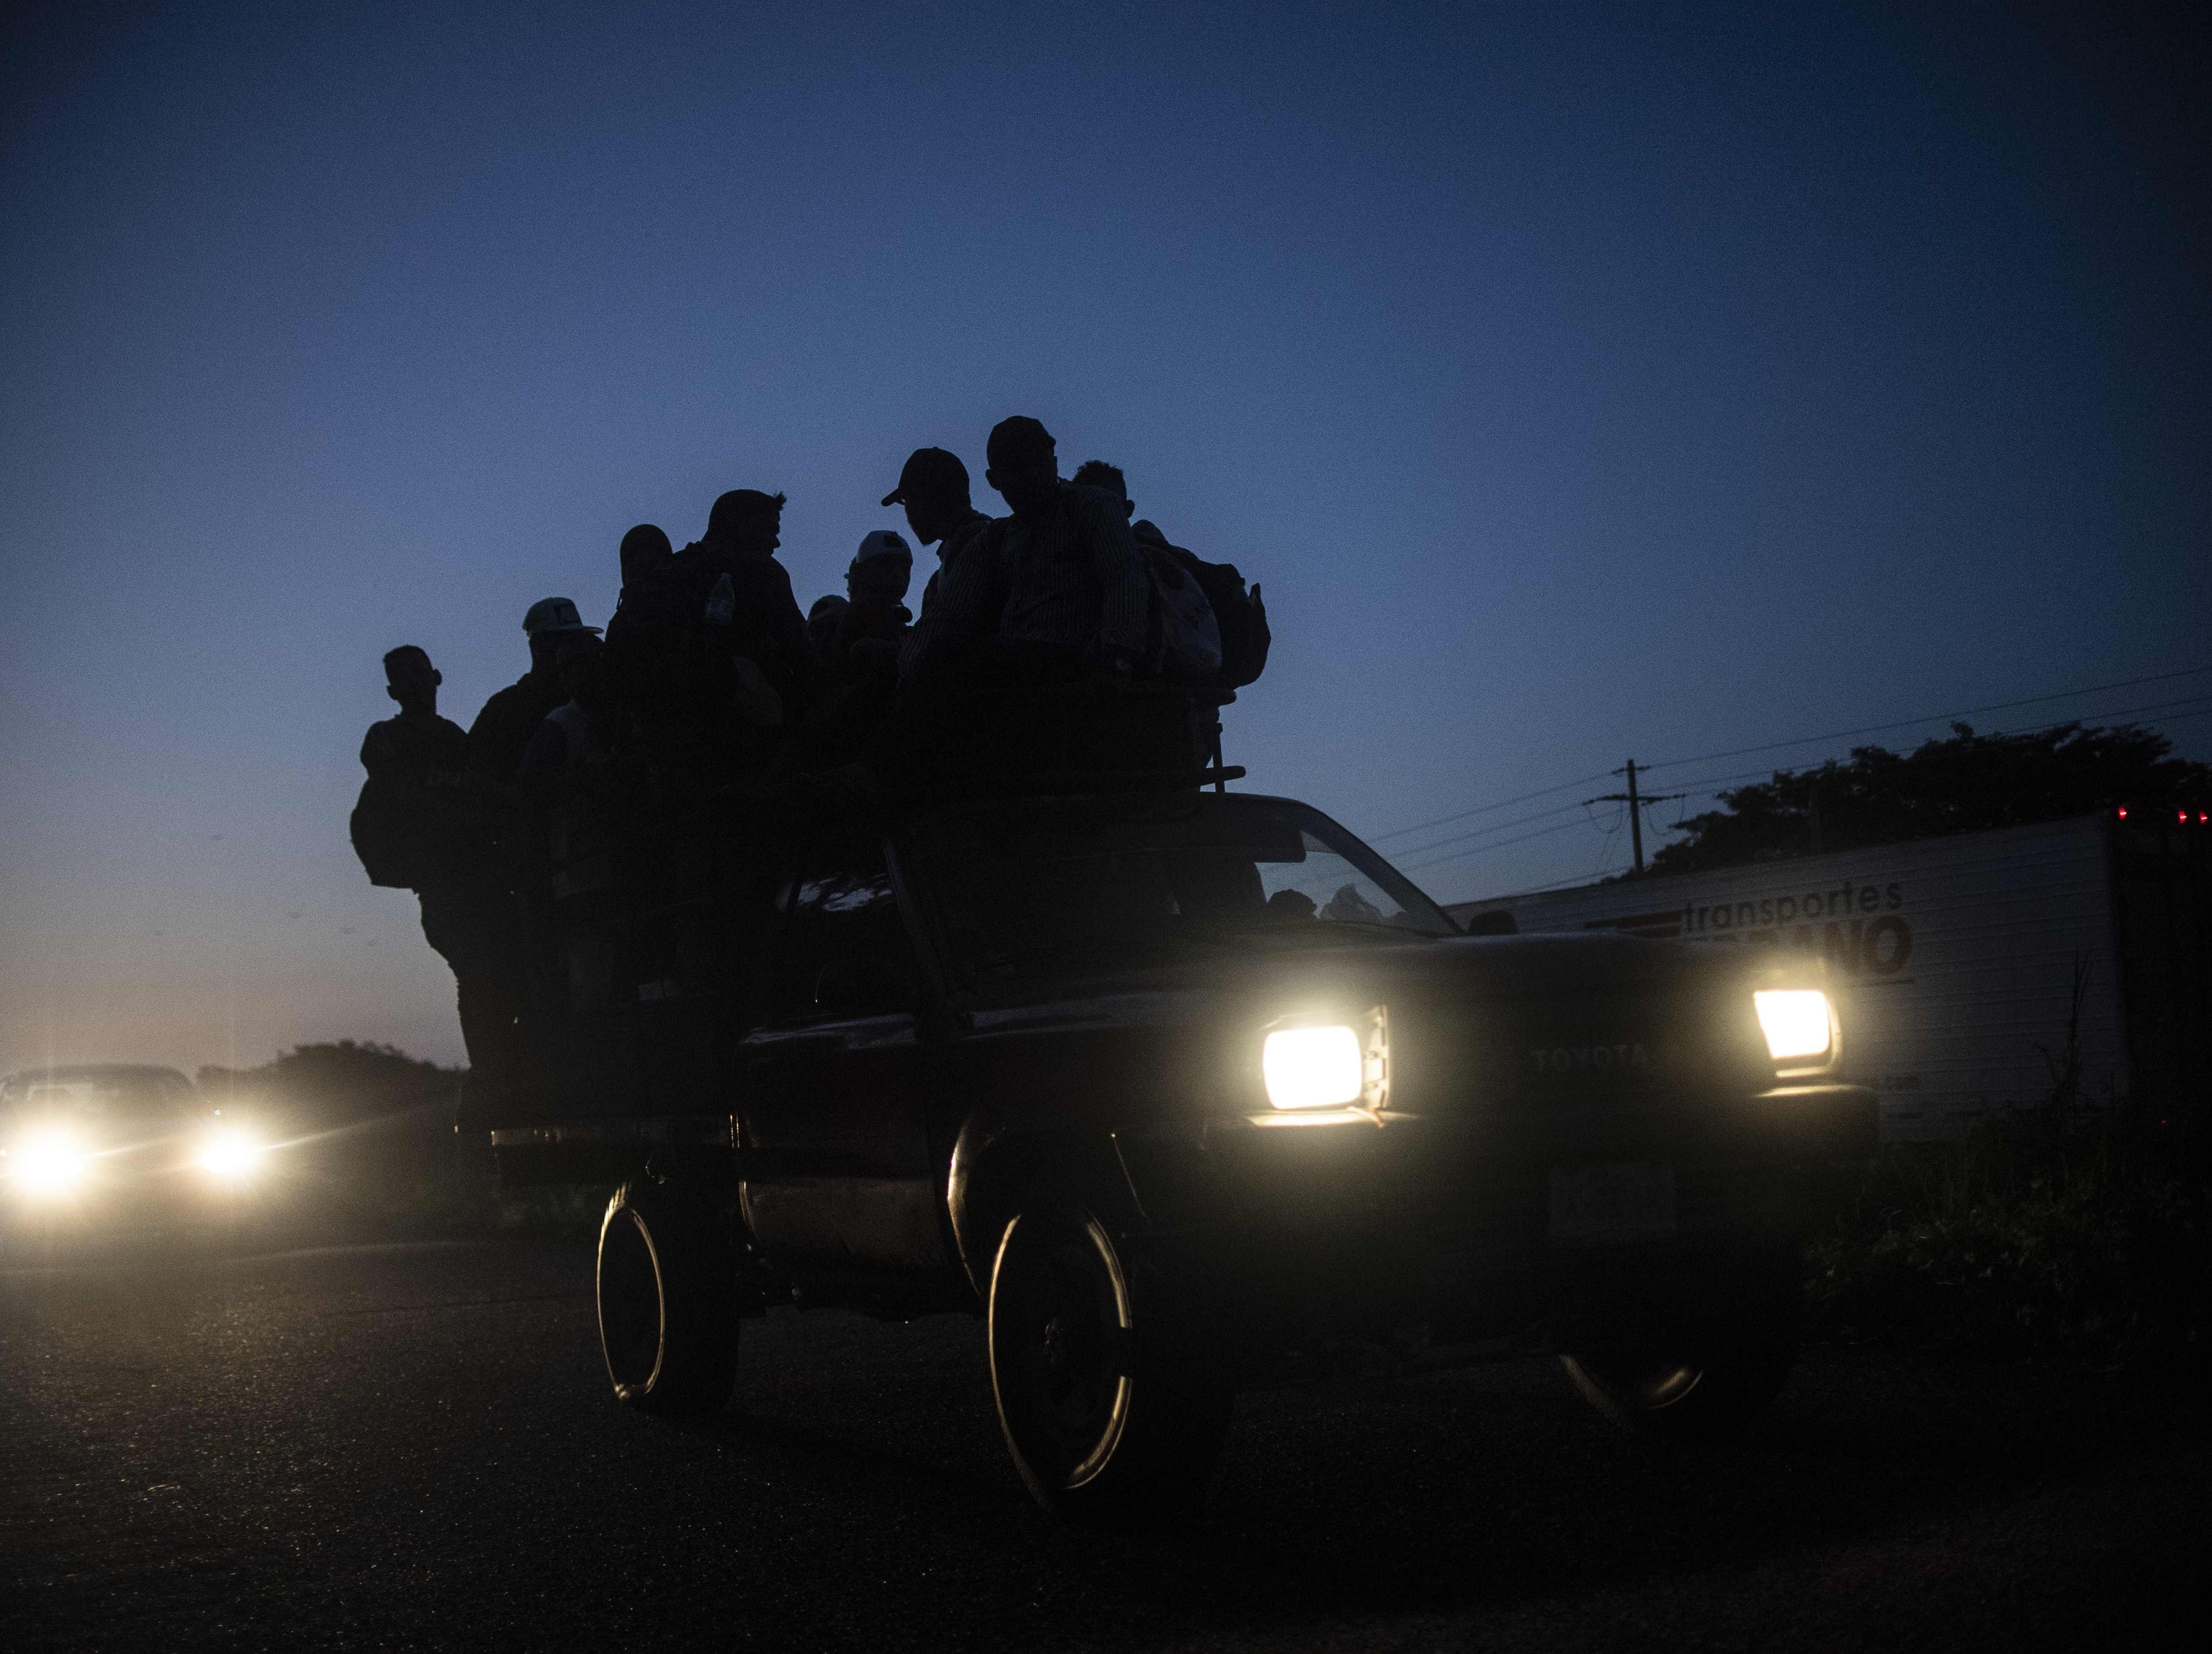 Honduran migrants heading in a caravan to the US, travel aboard a truck near Mapastepec, Chiapas state, Mexico, on October 25, 2018. - Thousands of Central American migrants crossing Mexico toward the United States in a caravan have resumed their long trek, walking about 12 hours to their next destination.